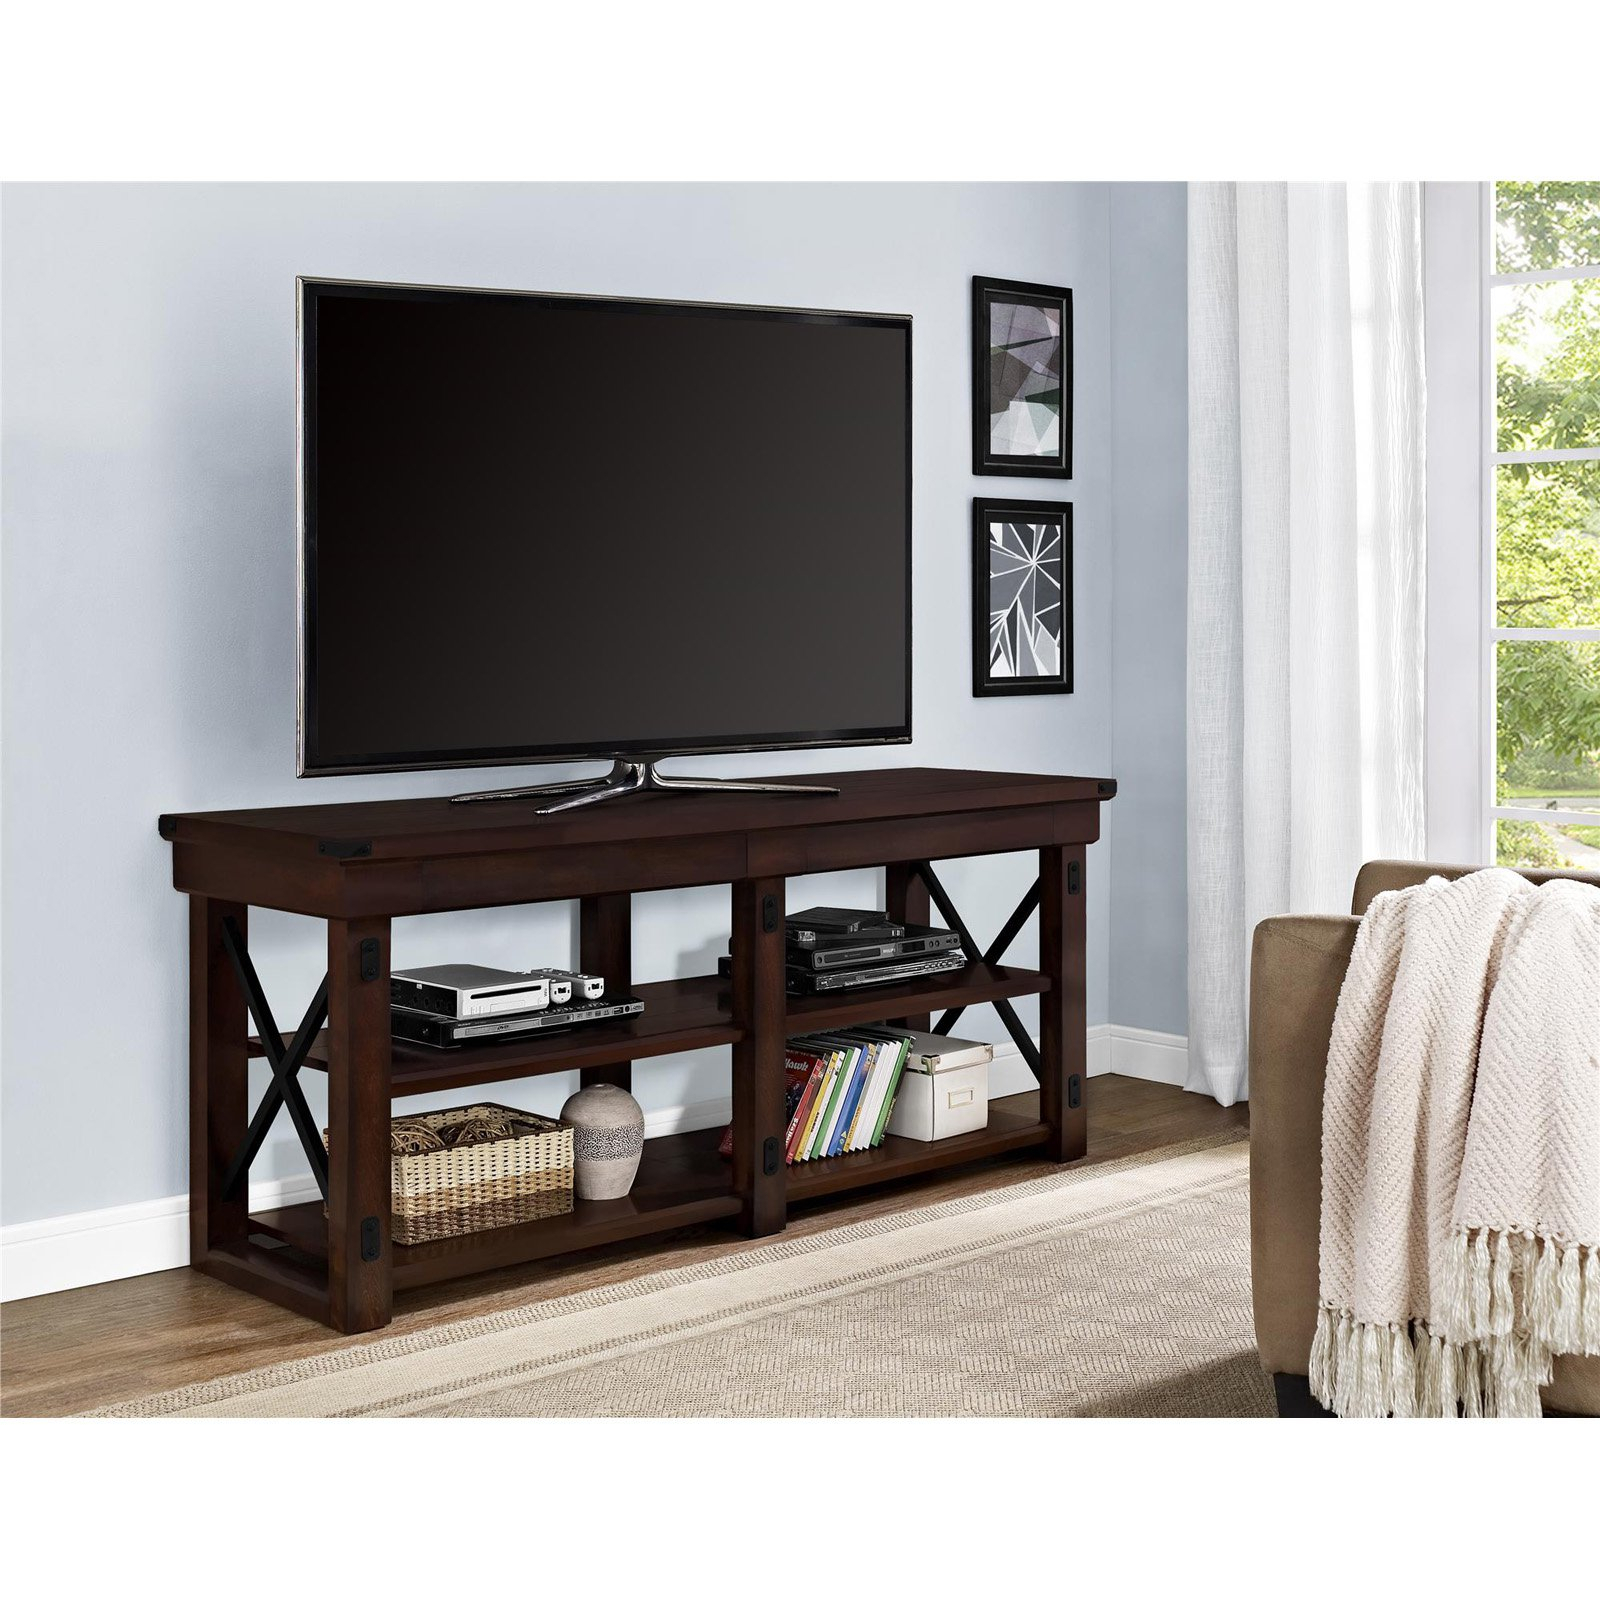 """Ameriwood Home Wildwood Tv Stand For Tvs Up To 65 With Regard To Grenier Tv Stands For Tvs Up To 65"""" (View 3 of 15)"""